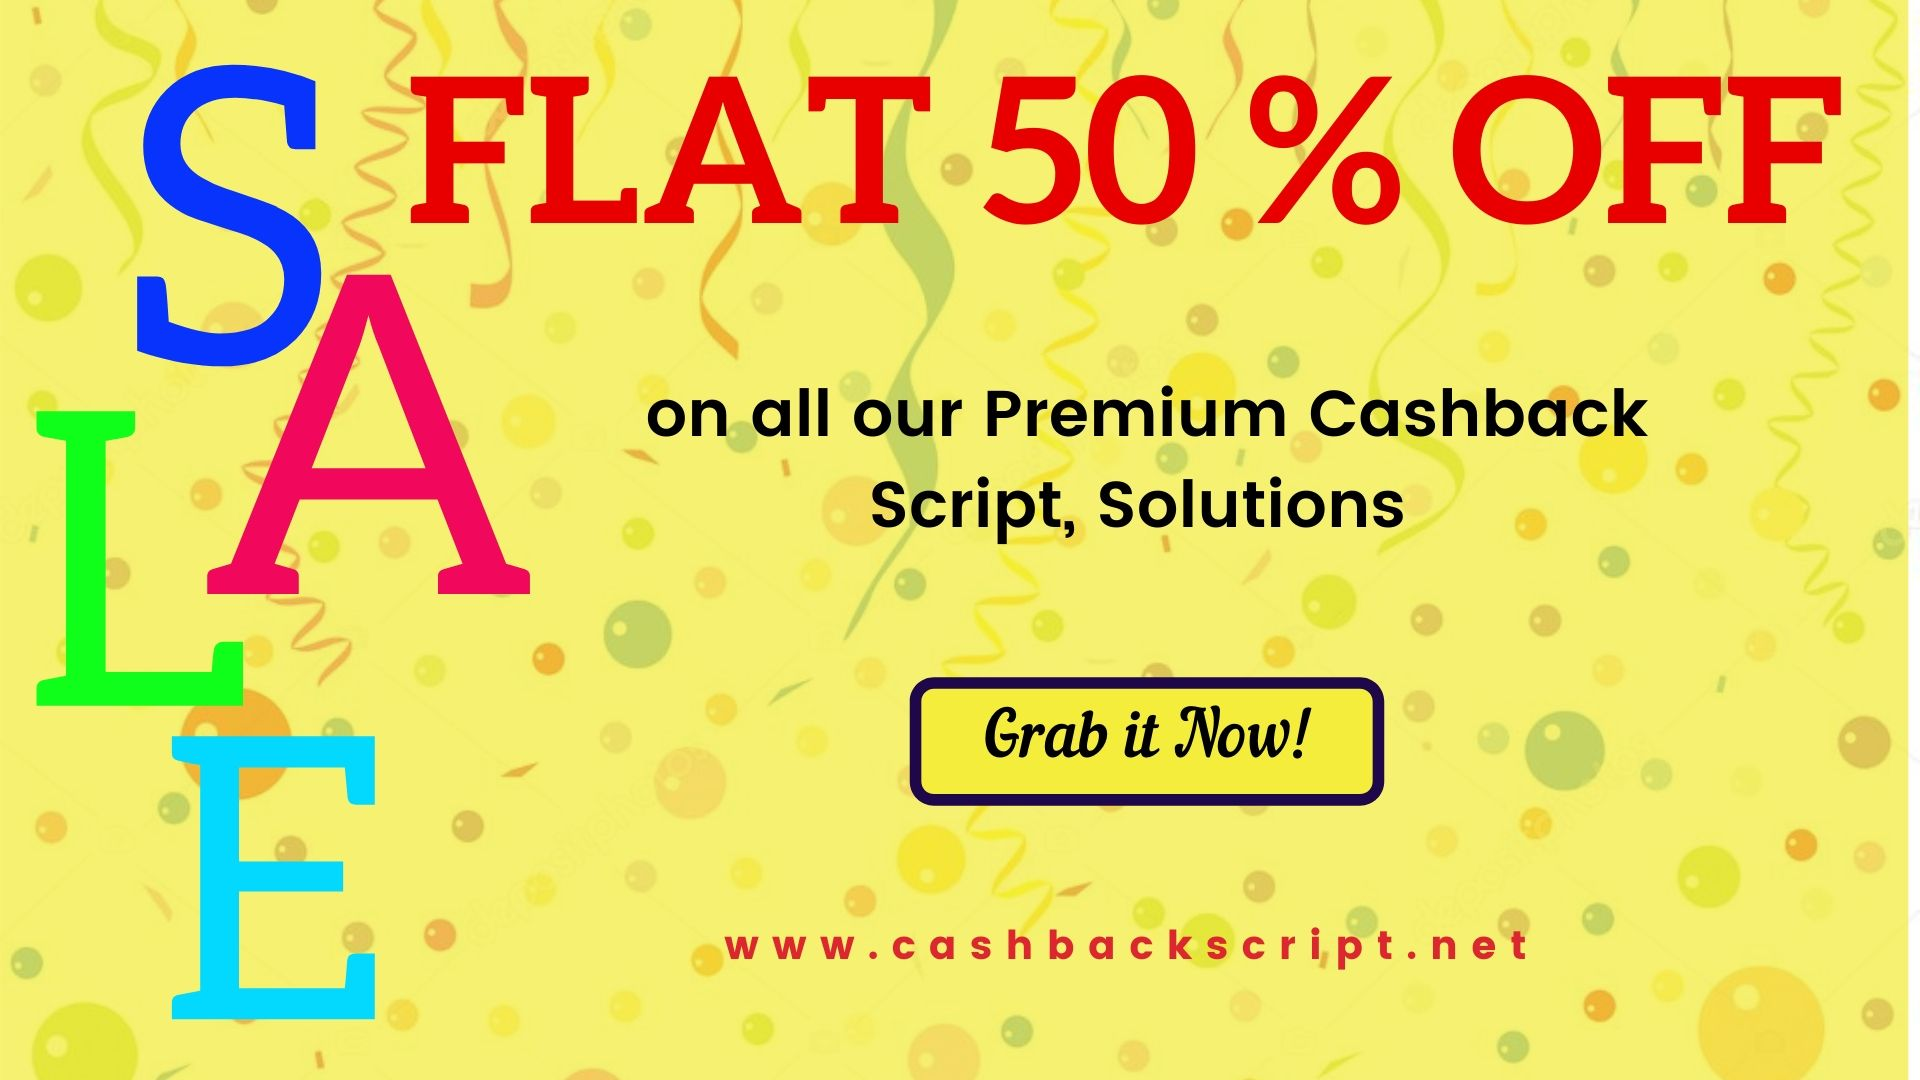 Flat 50 % OFF on all our Premium Cashback Solutions - Limited Time Offer